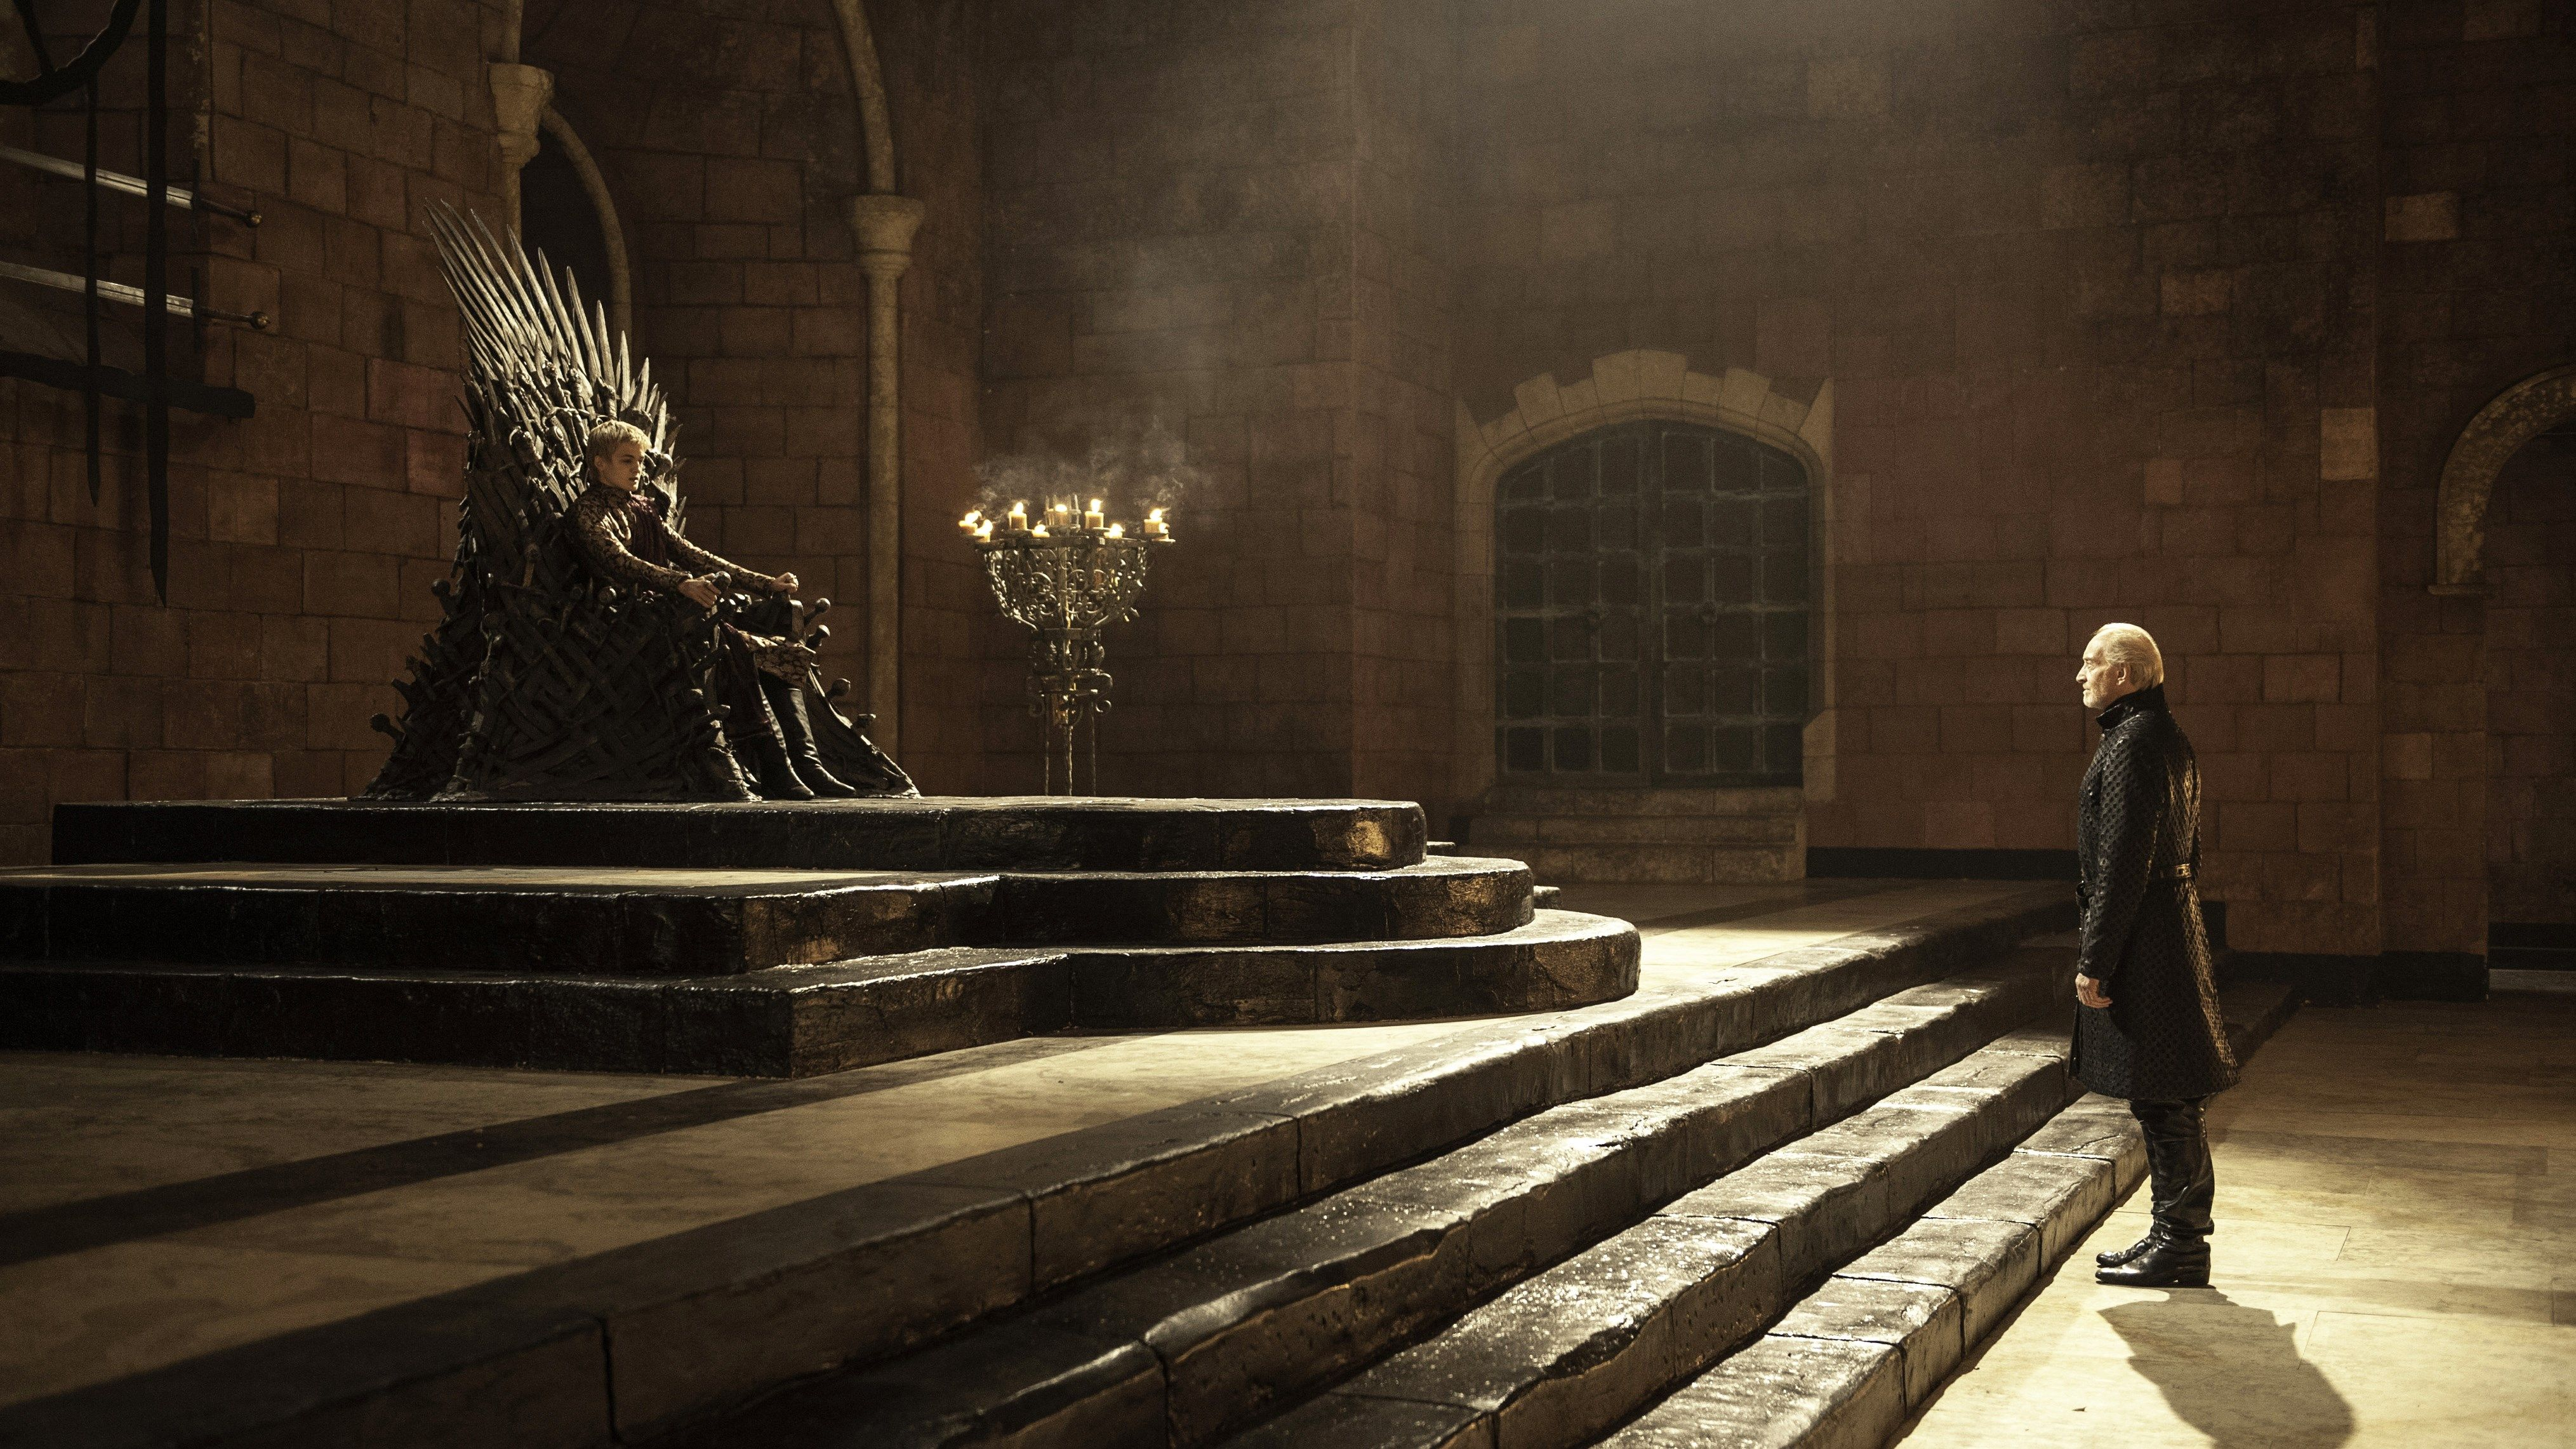 Hd Wallpaper Game Of Thrones By Corvin Turner 2017 03 16